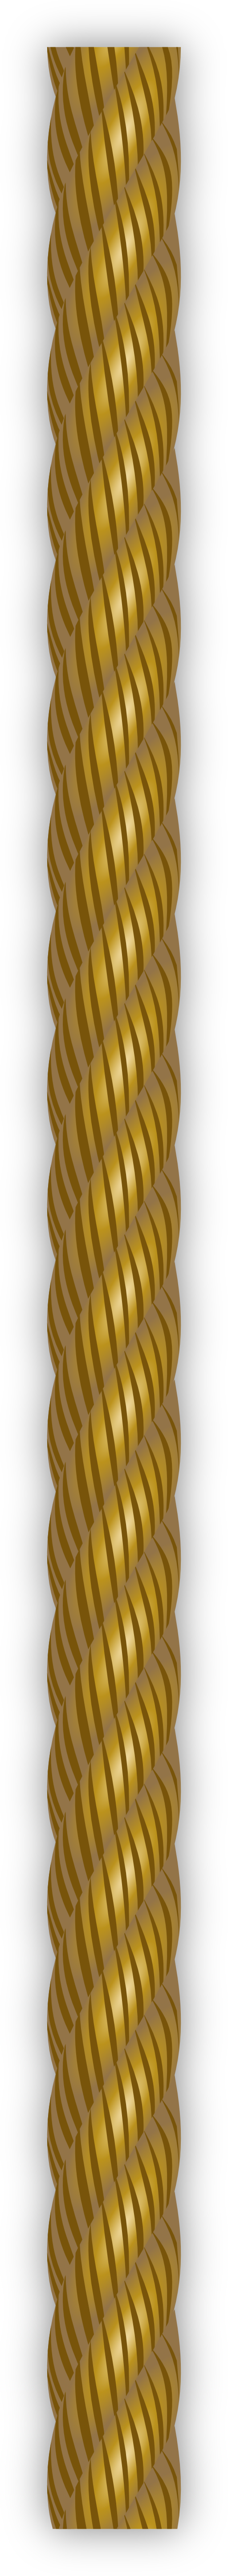 Rope Clipart.